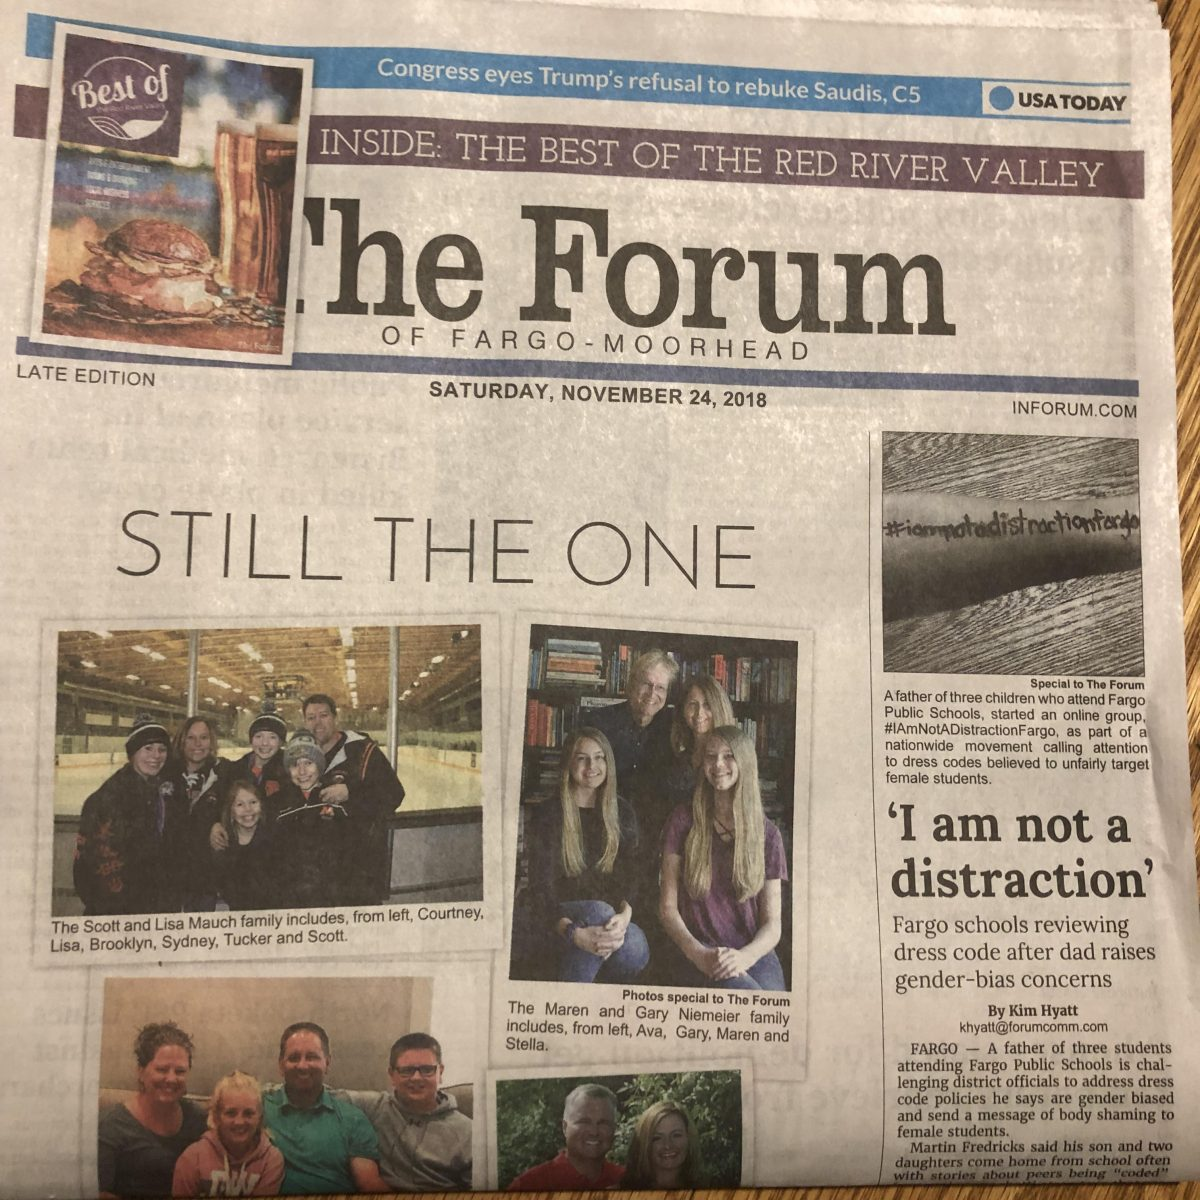 Photo of front page of The Forum, 11/24/18, which features a story on body shaming.